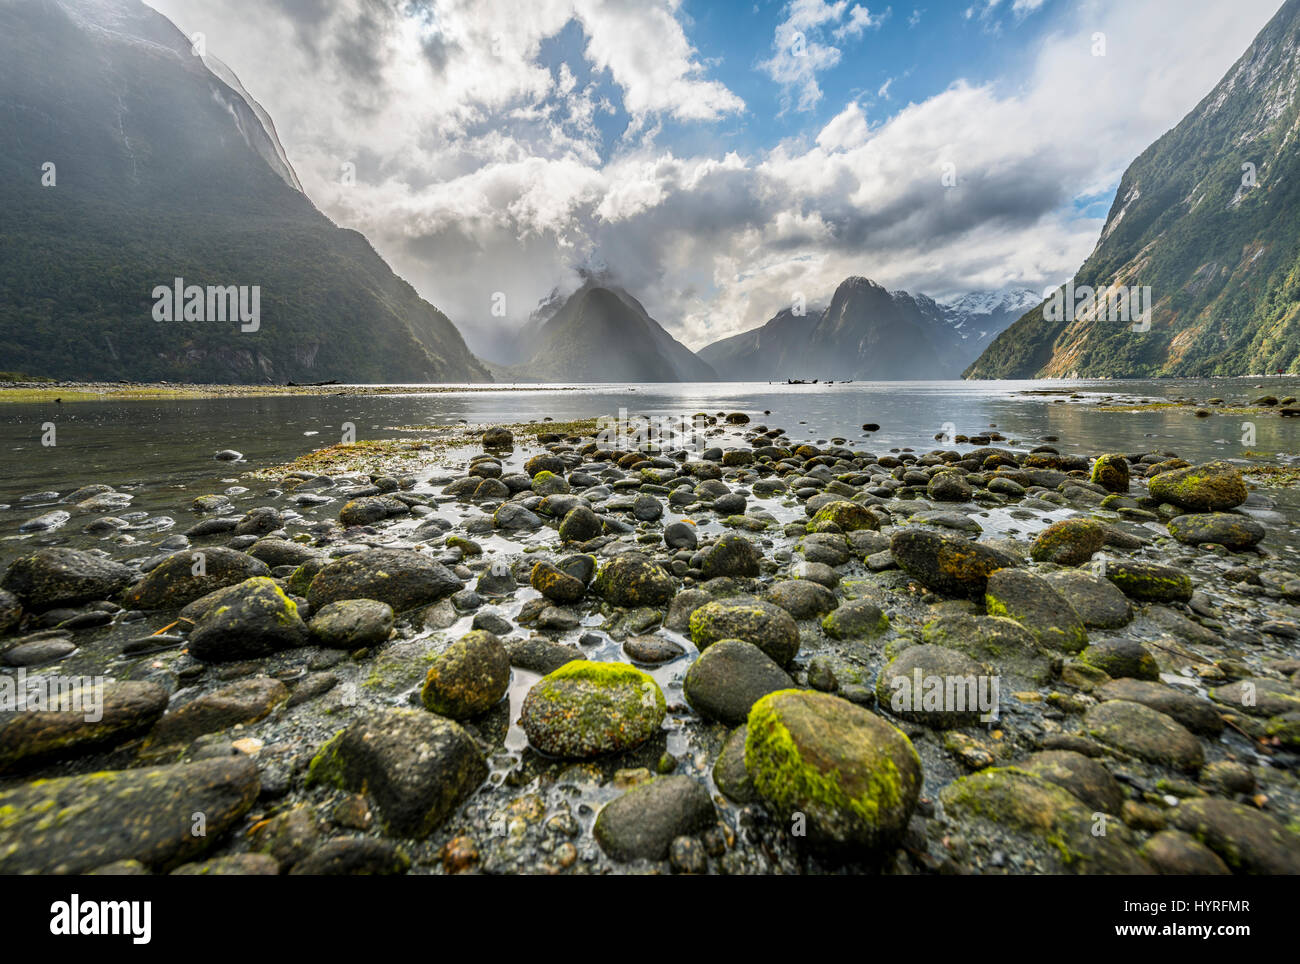 Les pierres couvertes de mousse, Mitre Peak, Milford Sound, Fiordland National Park, Te Anau, Southland Région, Photo Stock